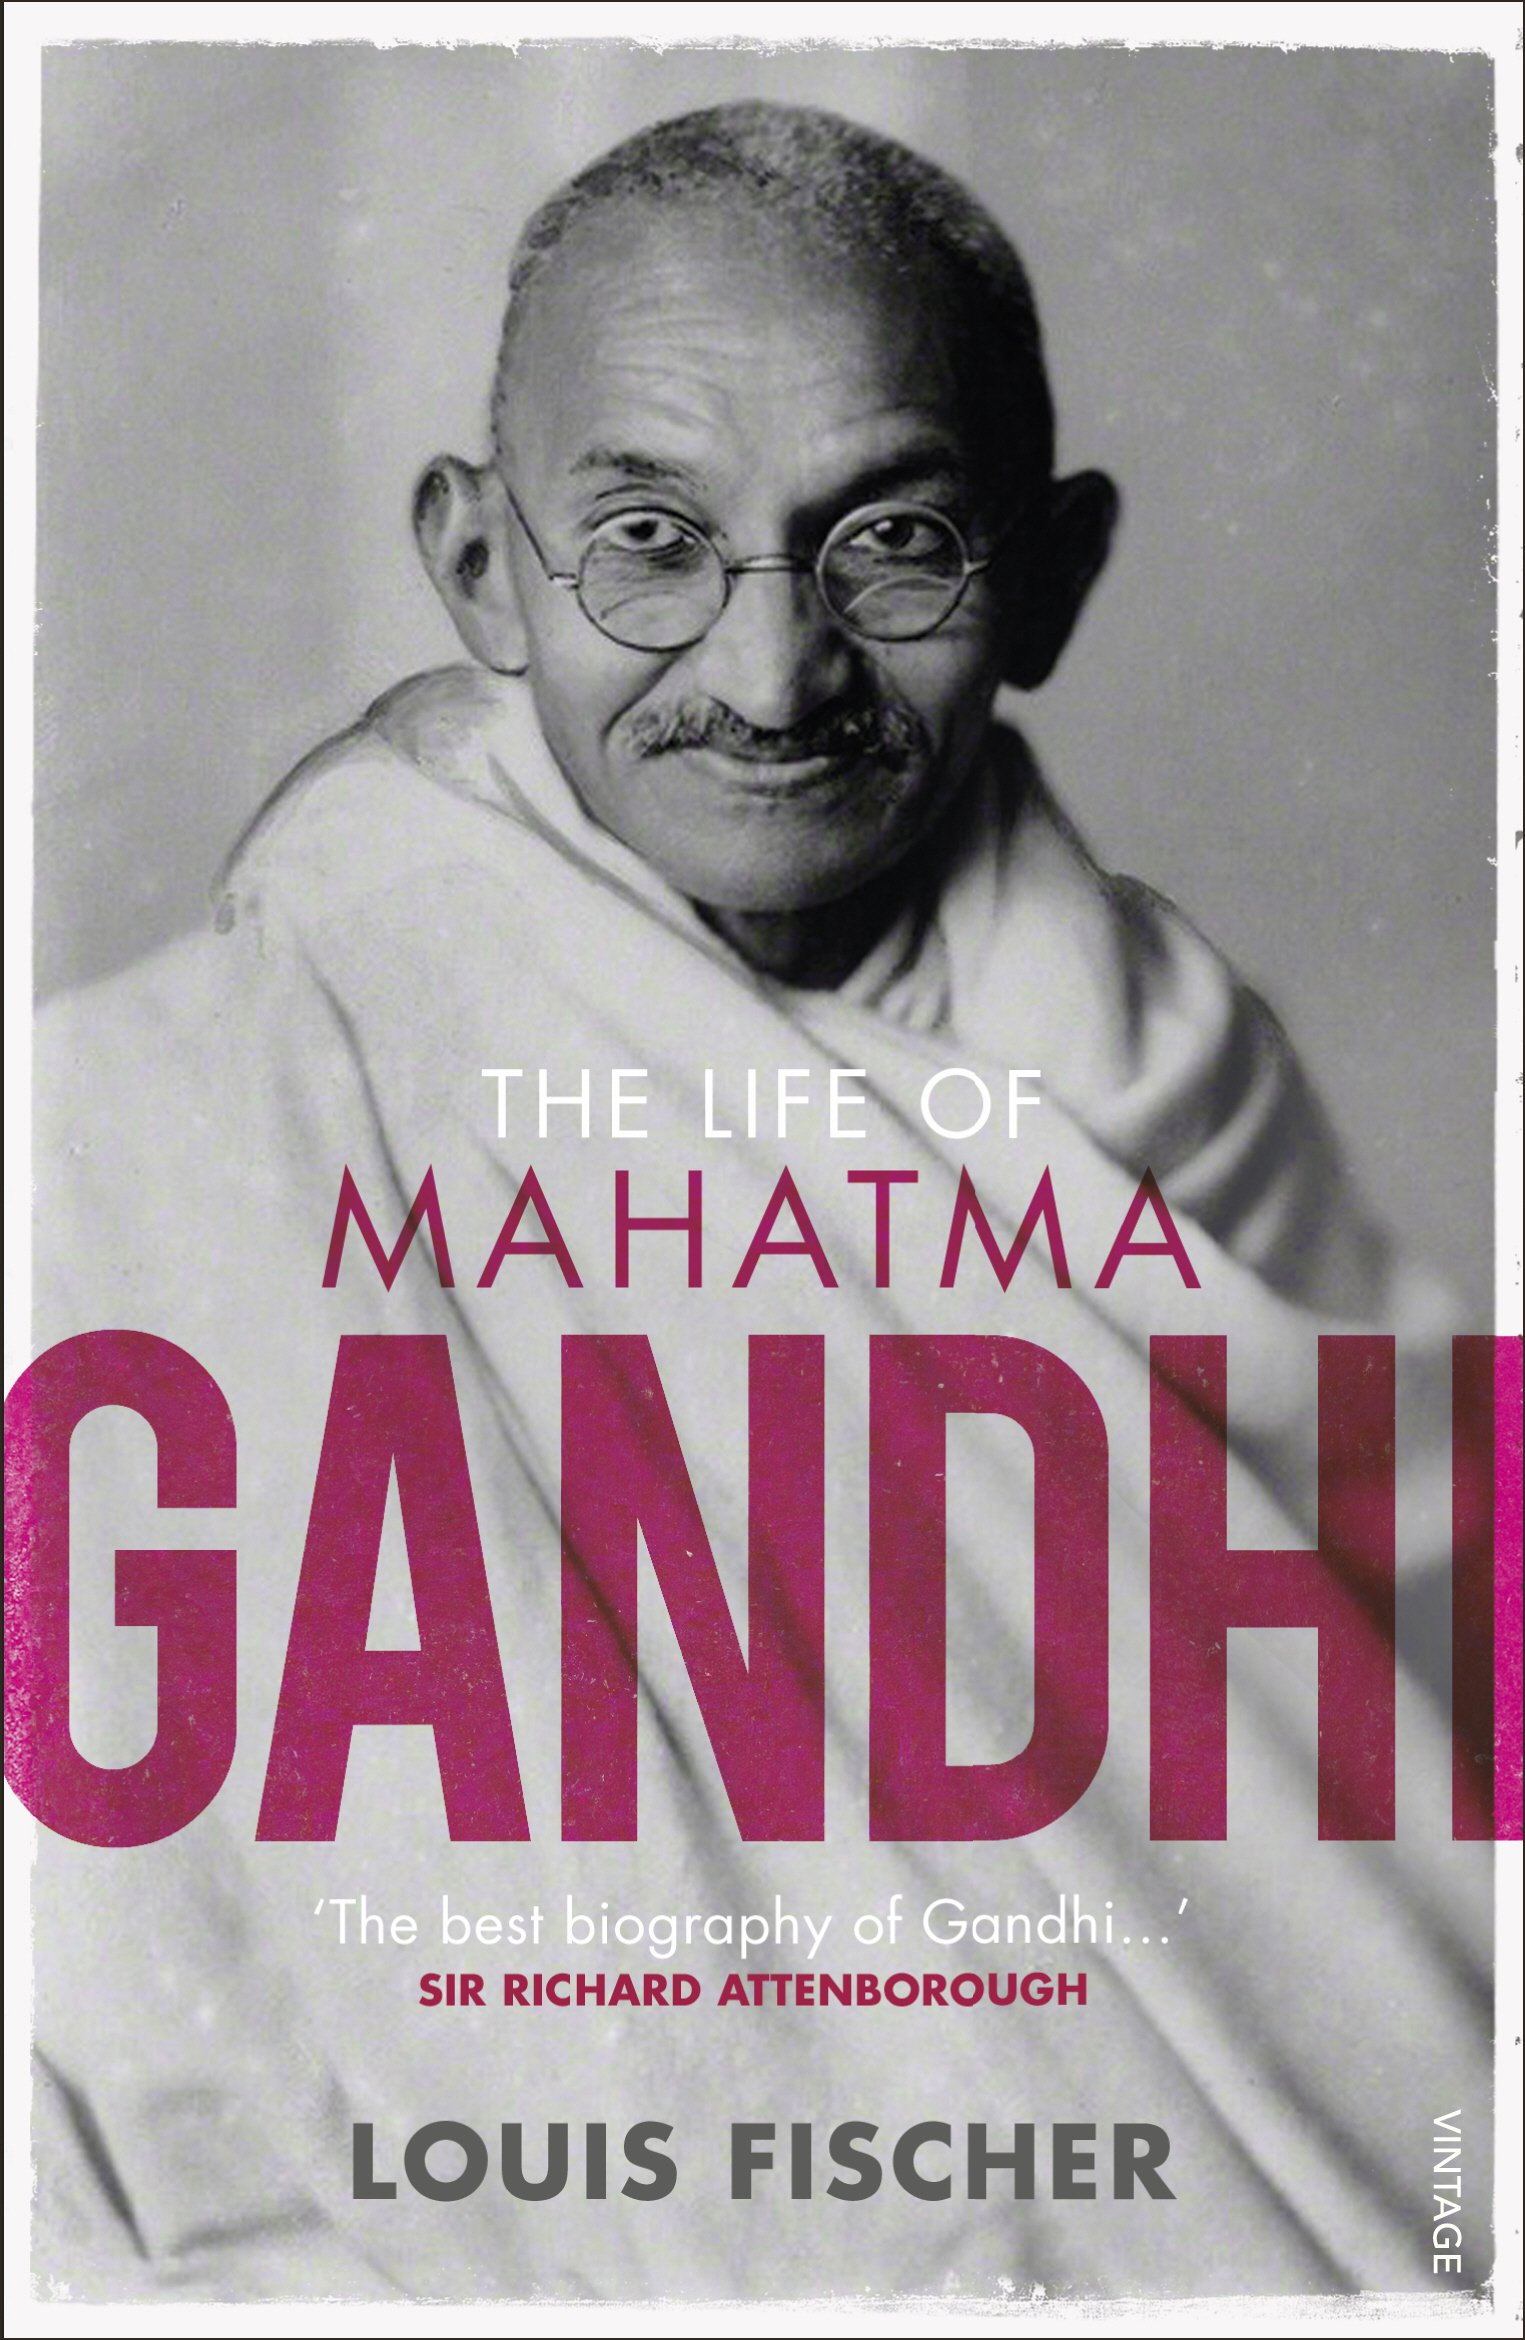 The Life Of Mahatma Gandhi: Amazon.es: Louis Fischer: Libros en idiomas extranjeros